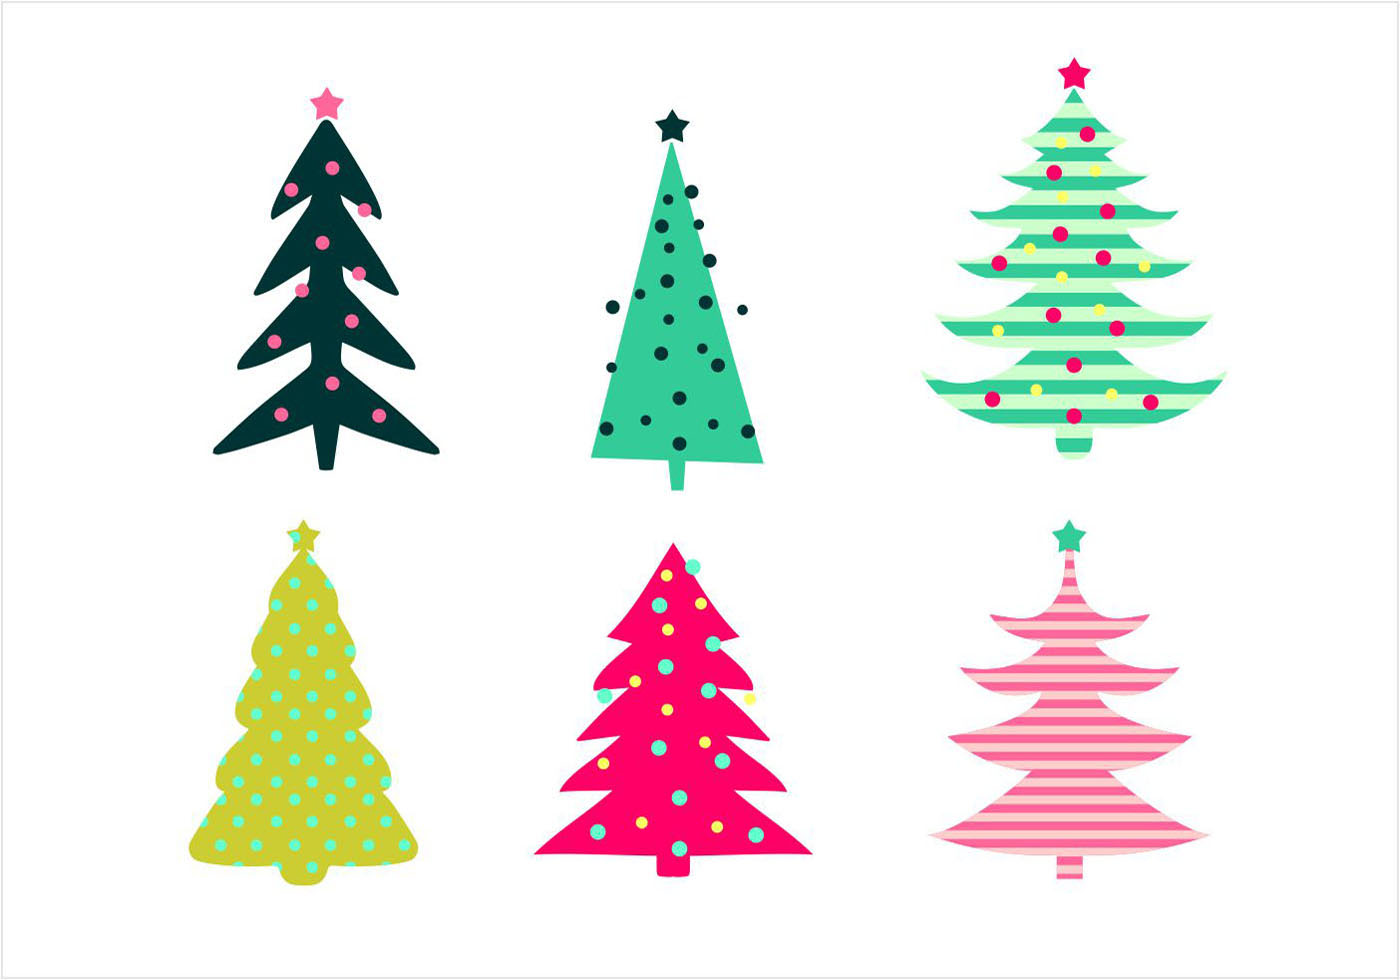 Christmas Tree Vector Set  Download Free Vector Art. Christmas Decoration Light Post. Christmas Tree Decorations Ideas To Make. Ideas For Christmas Tree Decorating With Ribbon. Personalised Christmas Decorations Canada. Vintage Christmas Ornaments Nz. Easy Christmas Decorations For Office. Led Lighted Christmas Decorations. Christmas Table Centerpieces Homemade